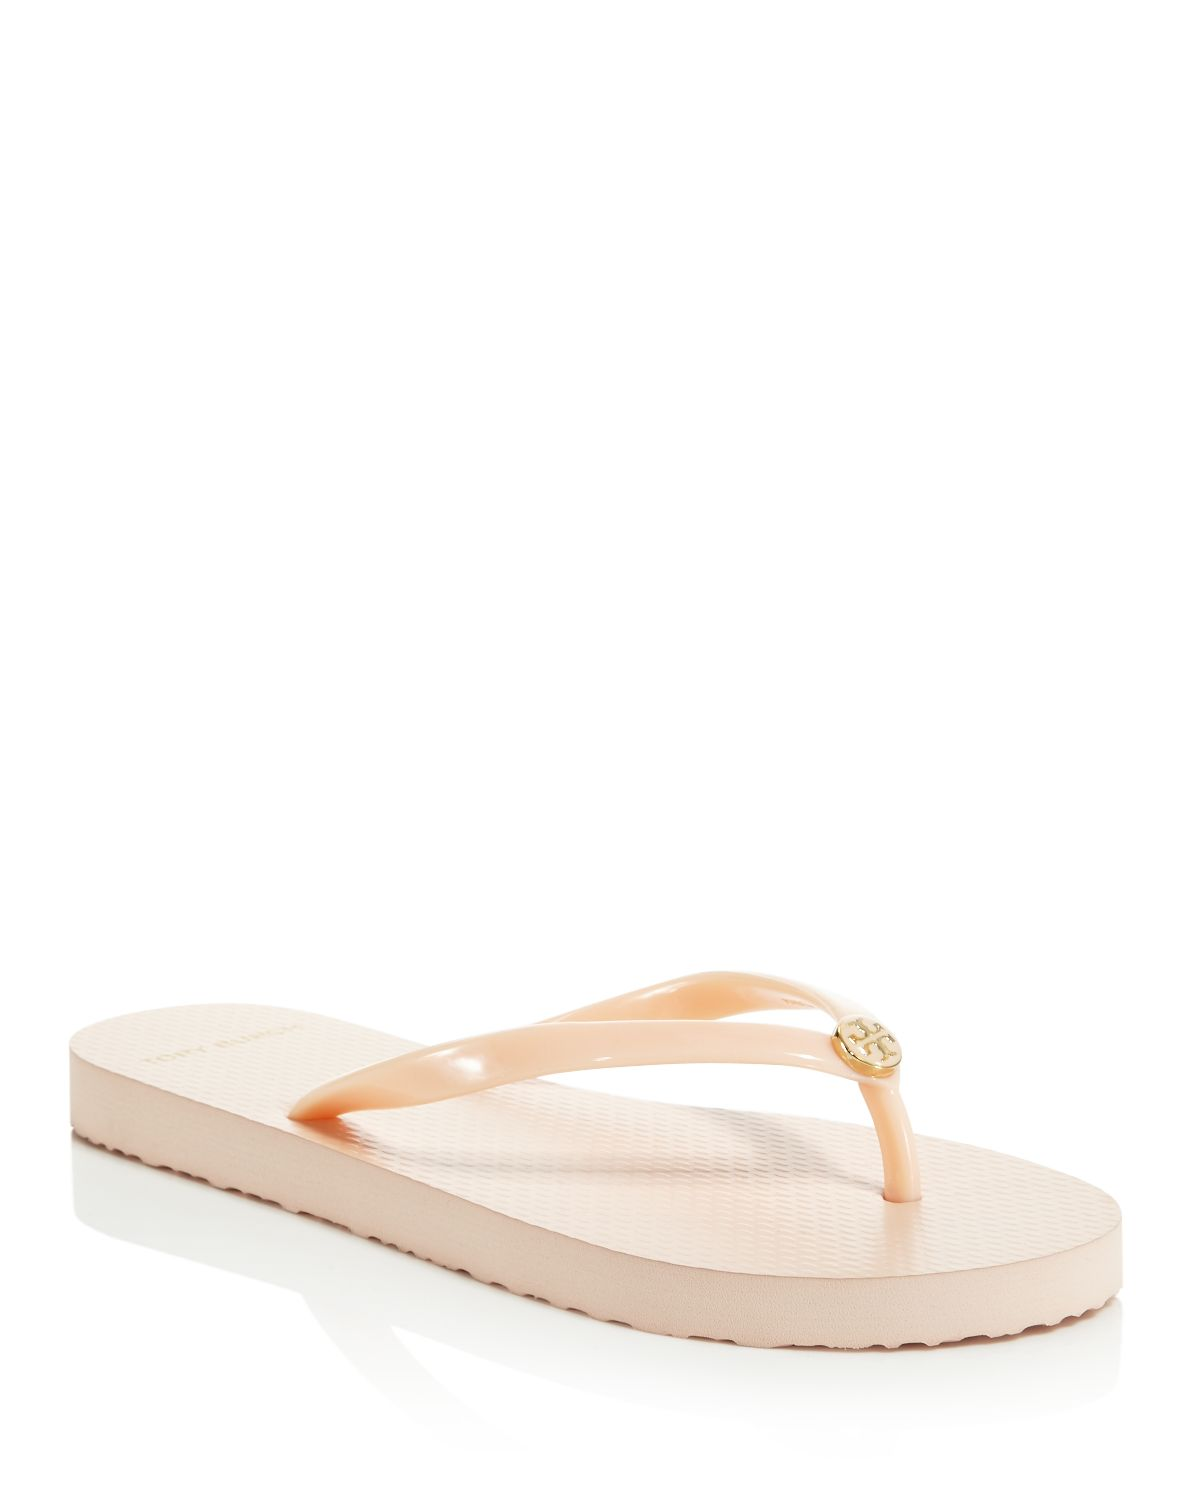 Women's Solid Thin Flip Flops  by Tory Burch